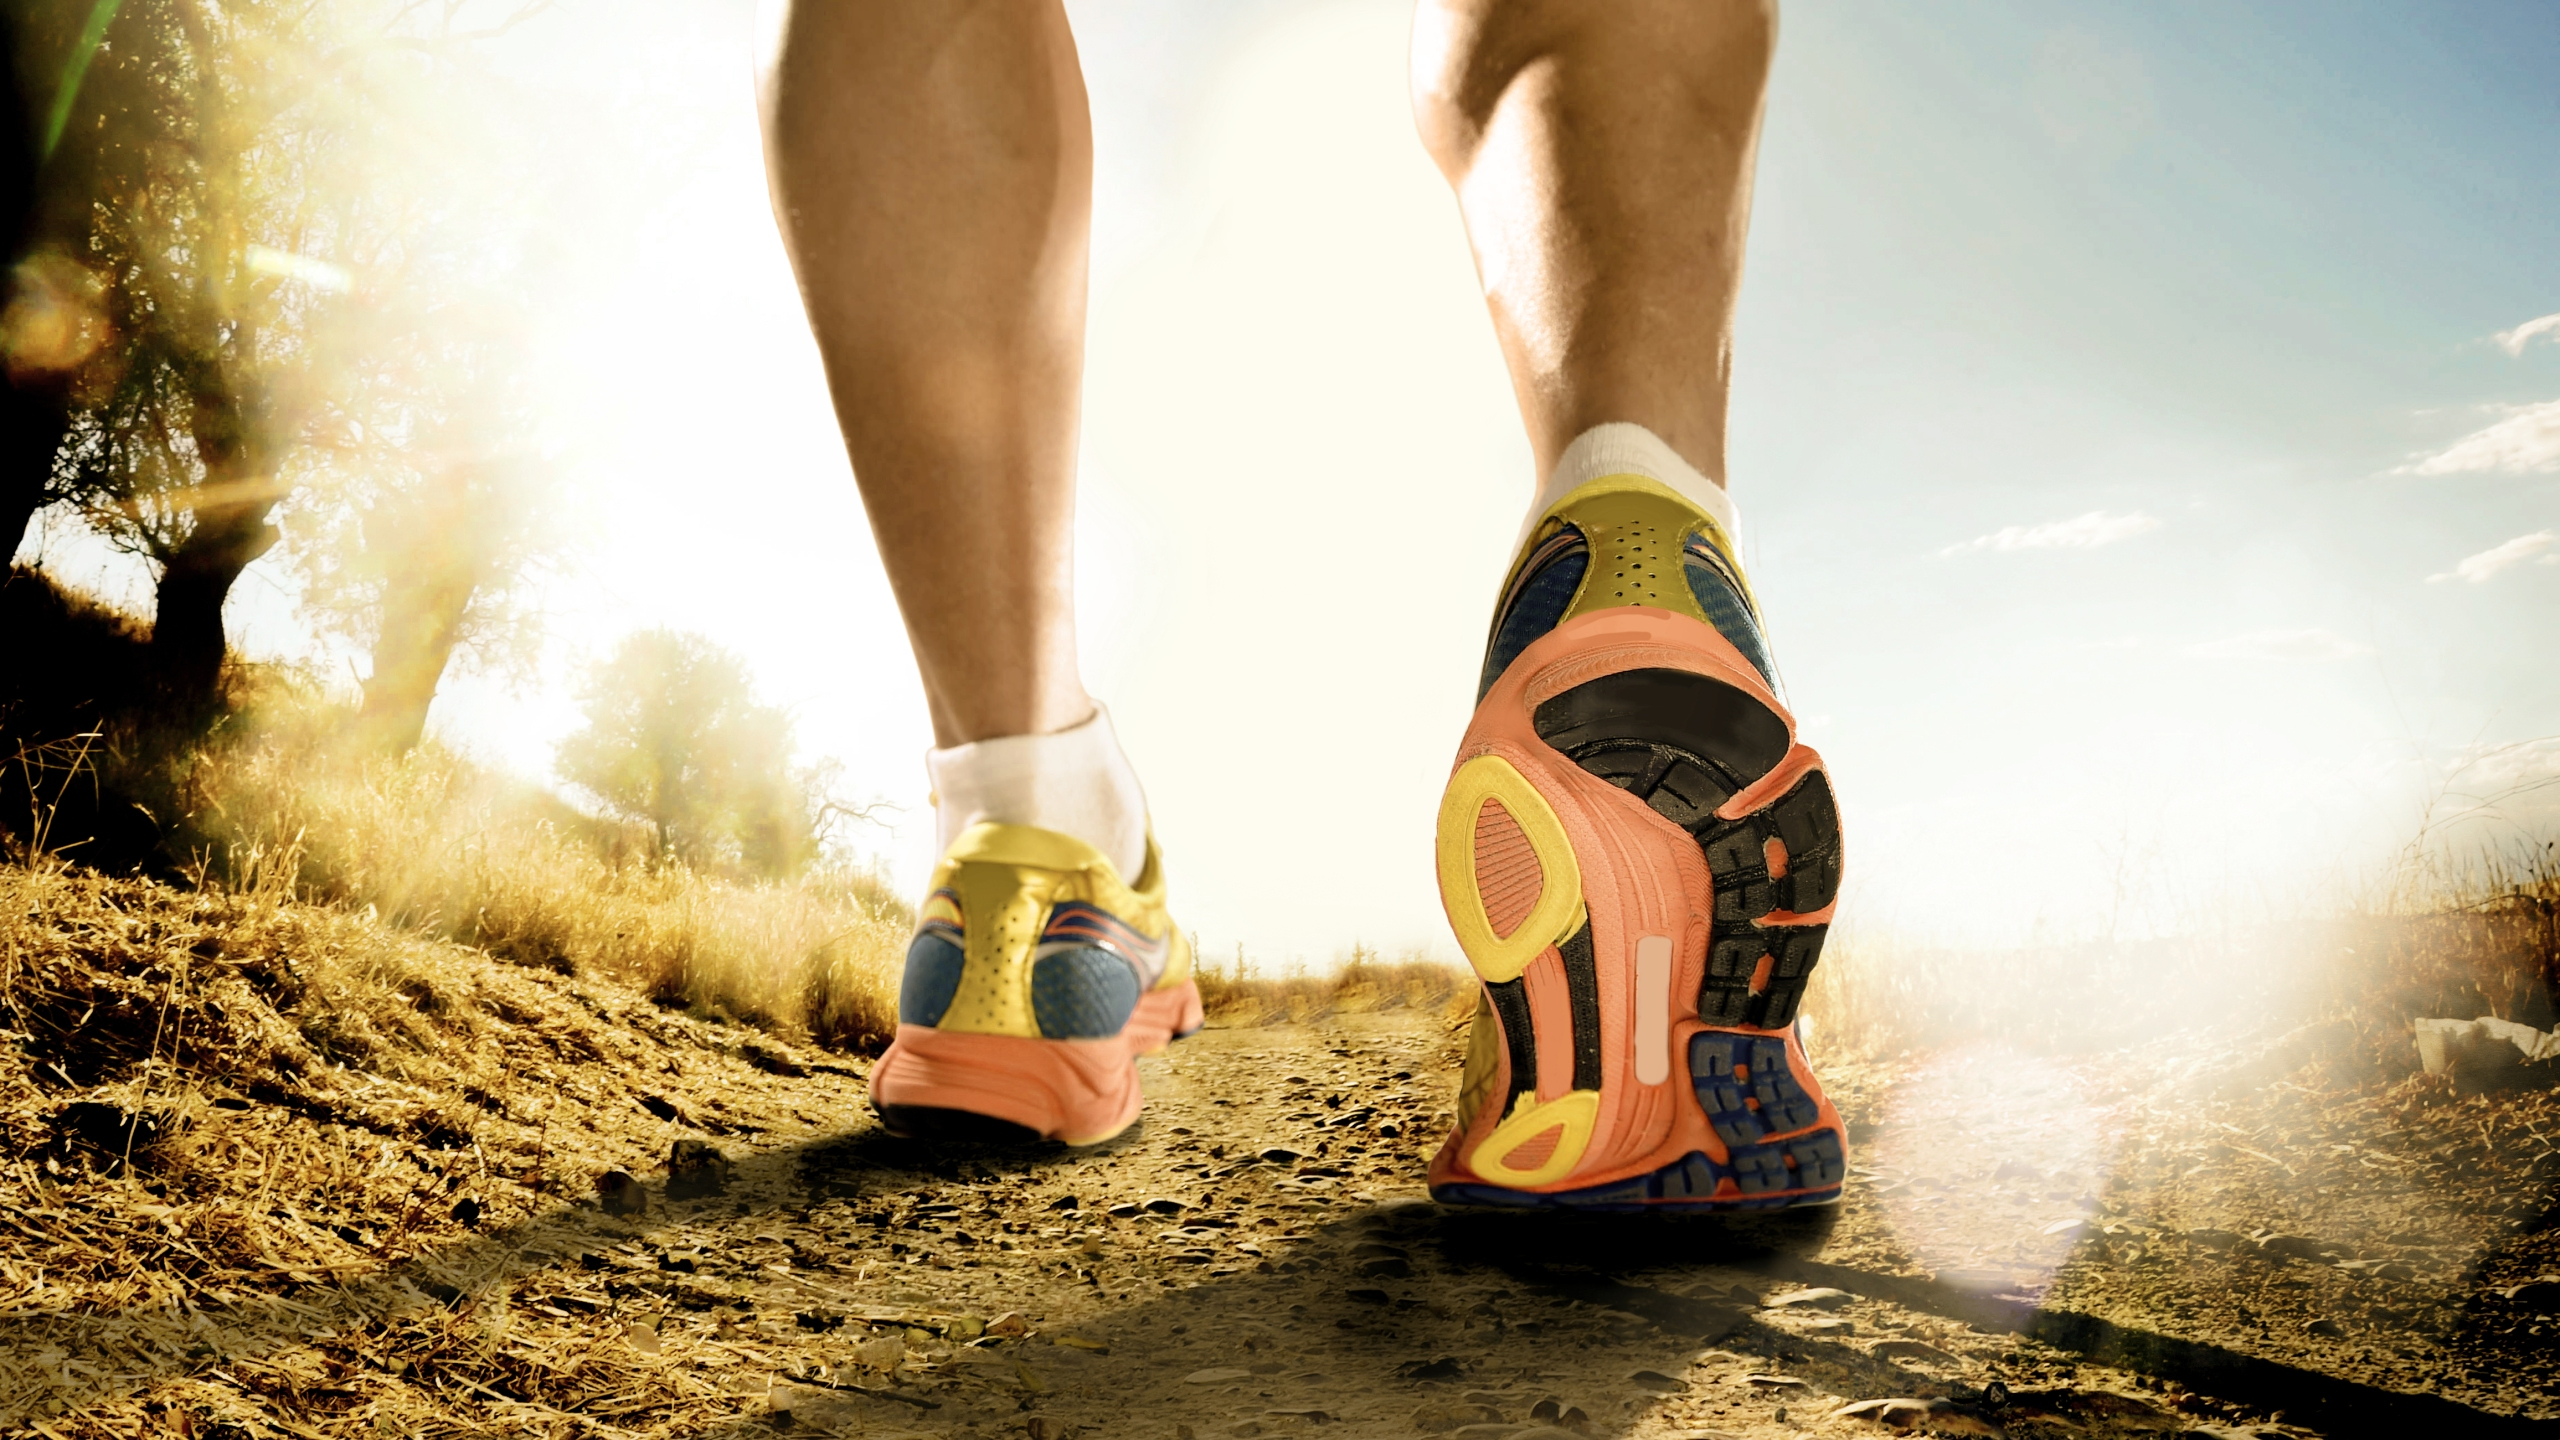 Strong Legs And Shoes Of Sport Man Jogging In Fitness Training W_1494529522603